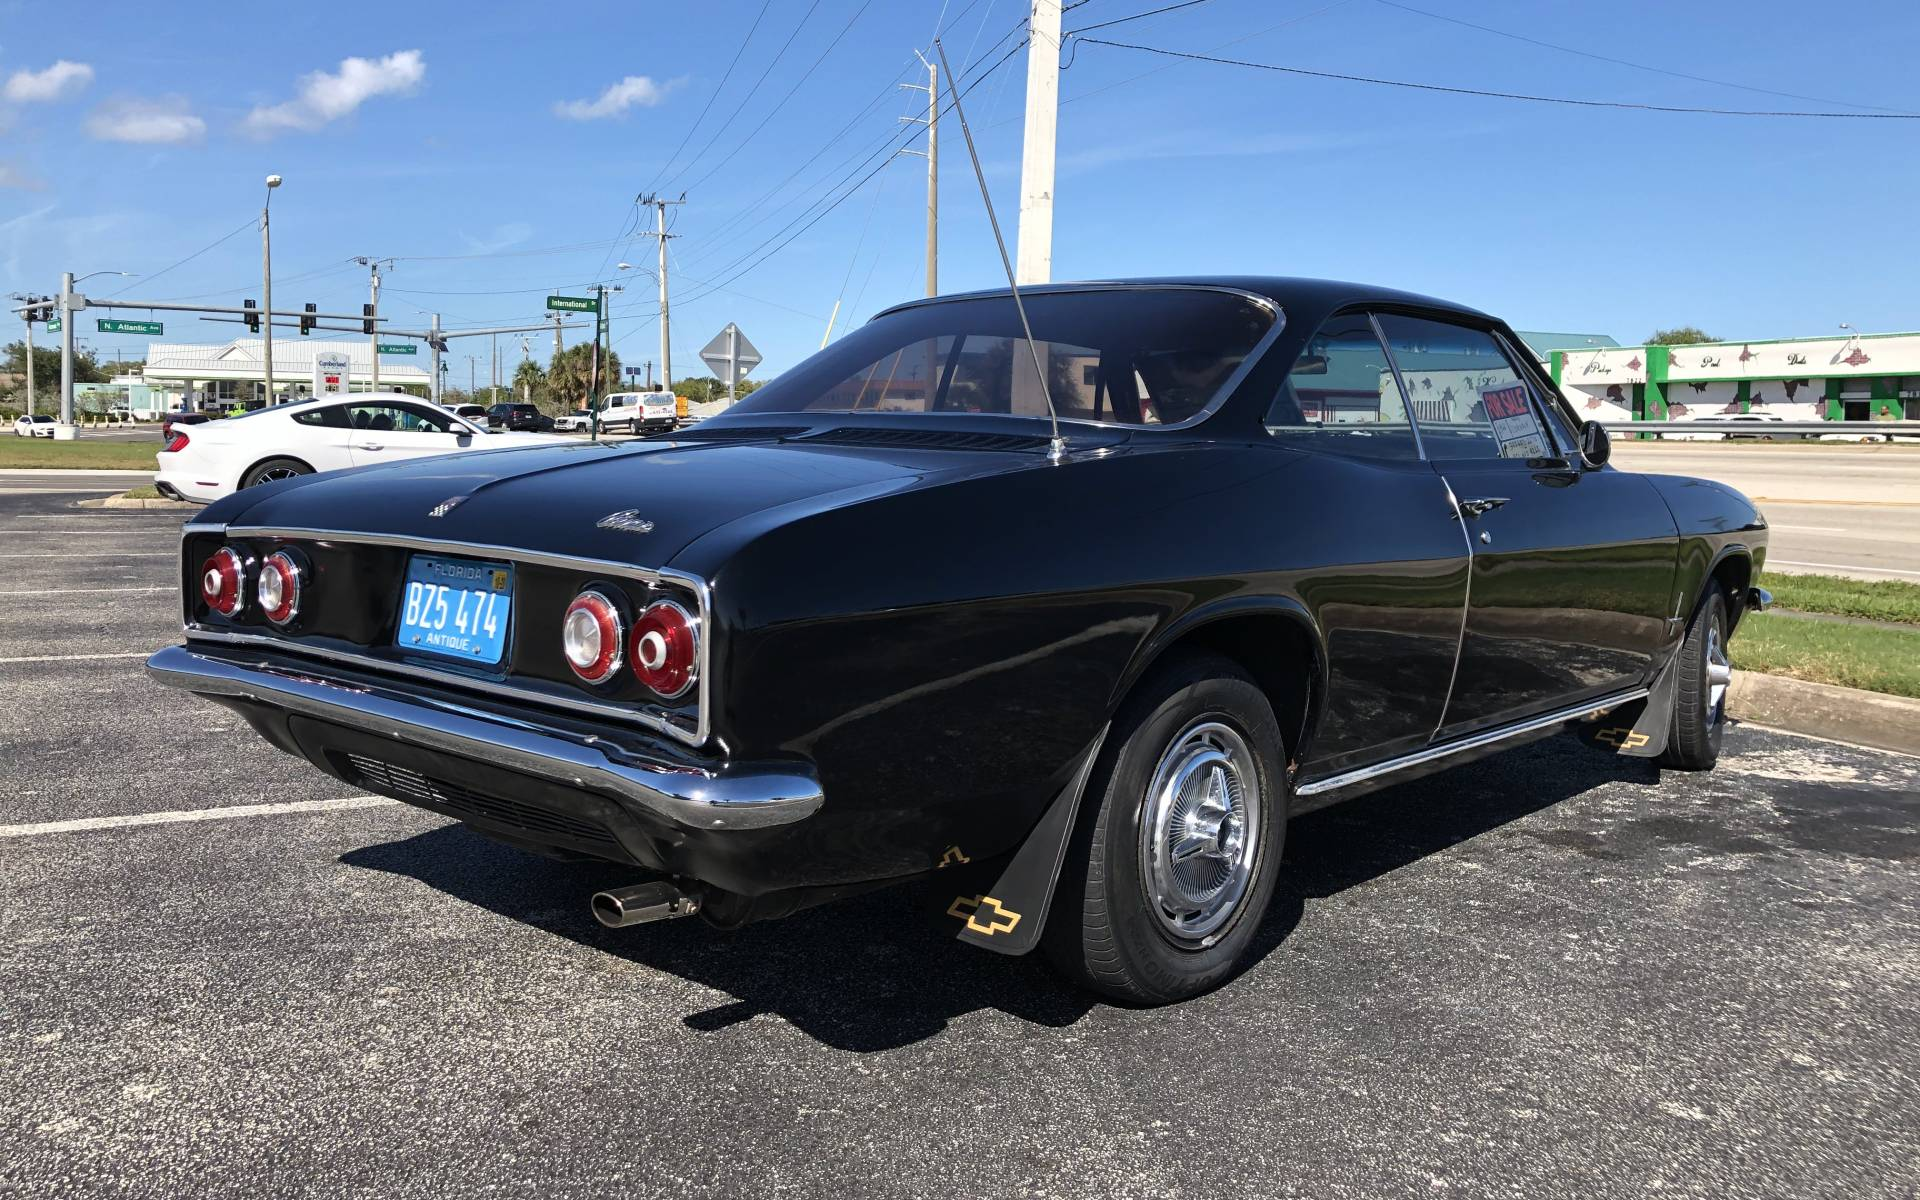 <p><strong>1966 Chevrolet Corvair</strong></p>